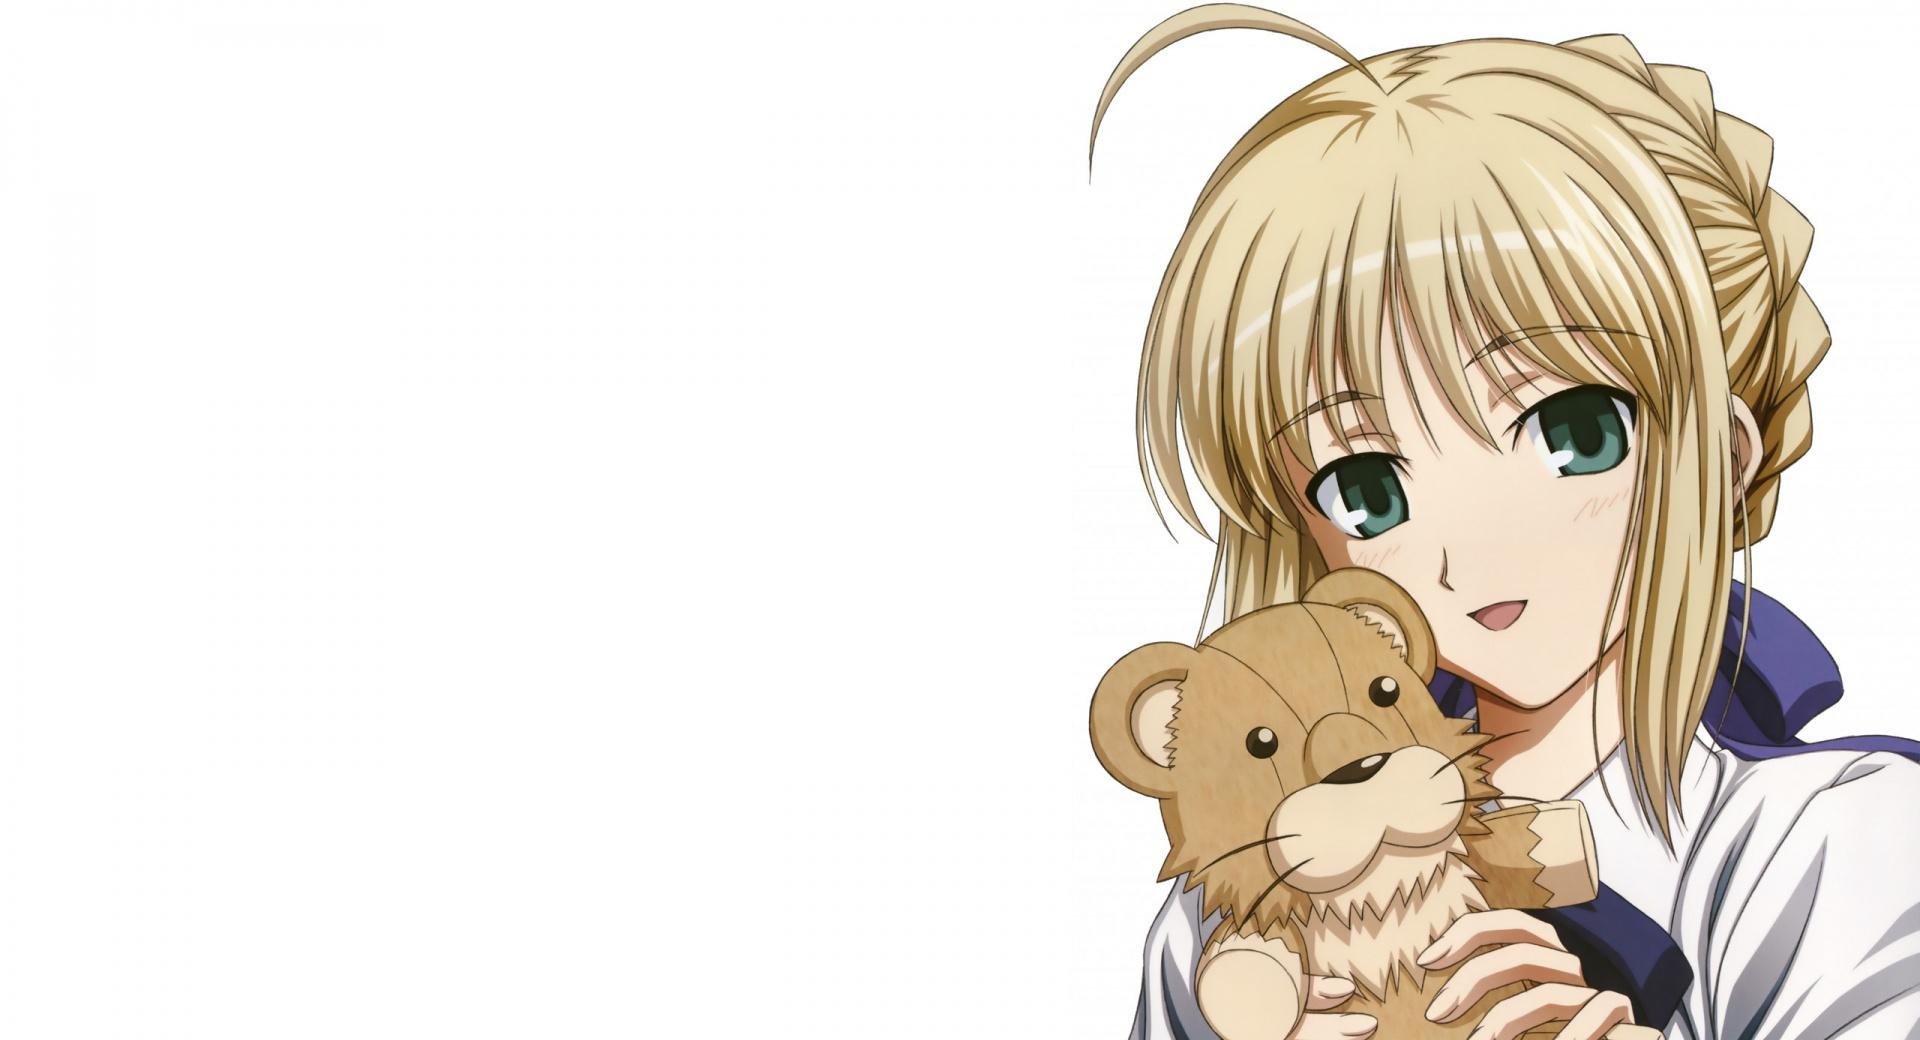 Anime Girl With A Lion Toy wallpapers HD quality